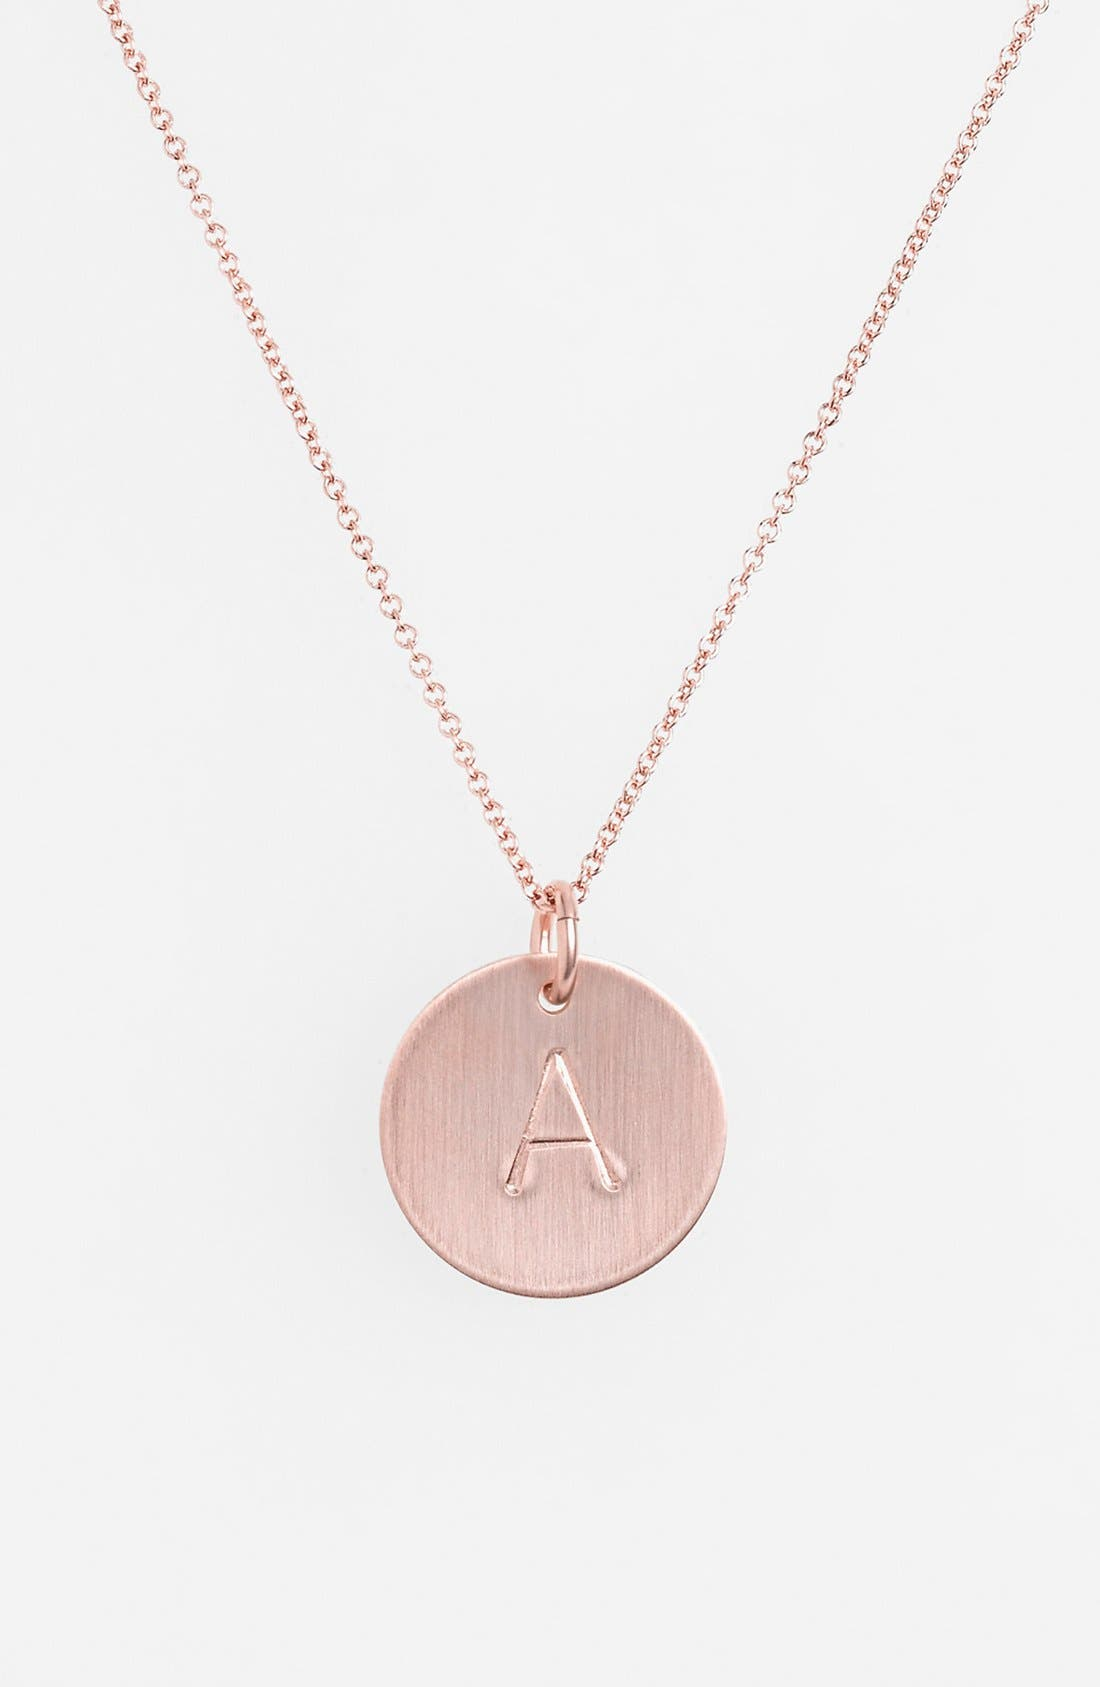 Nashelle 14k-Rose Gold Fill Initial Disc Necklace